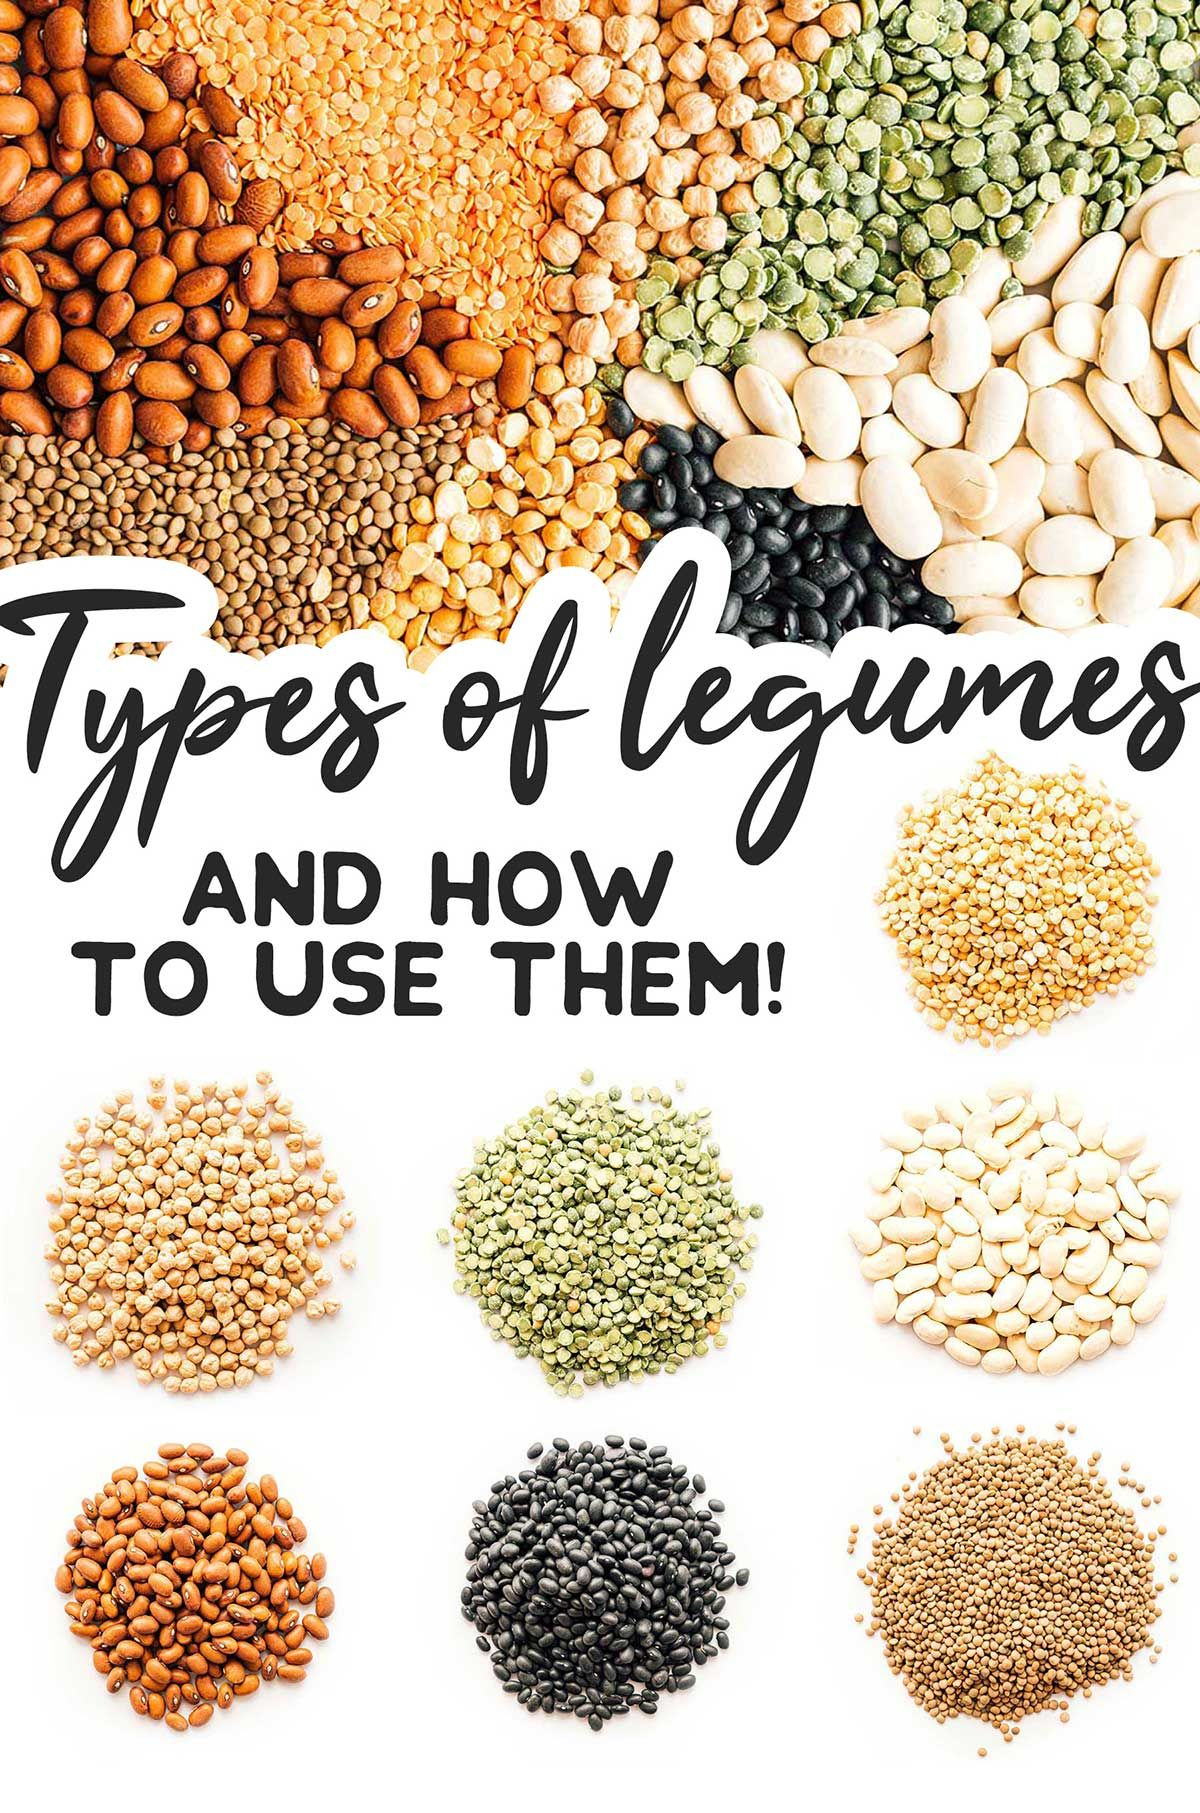 Low Carb Legumes Can You Eat Beans And Peas On Keto Diet Keto Diet Food List Low Carb Beans Keto Diet